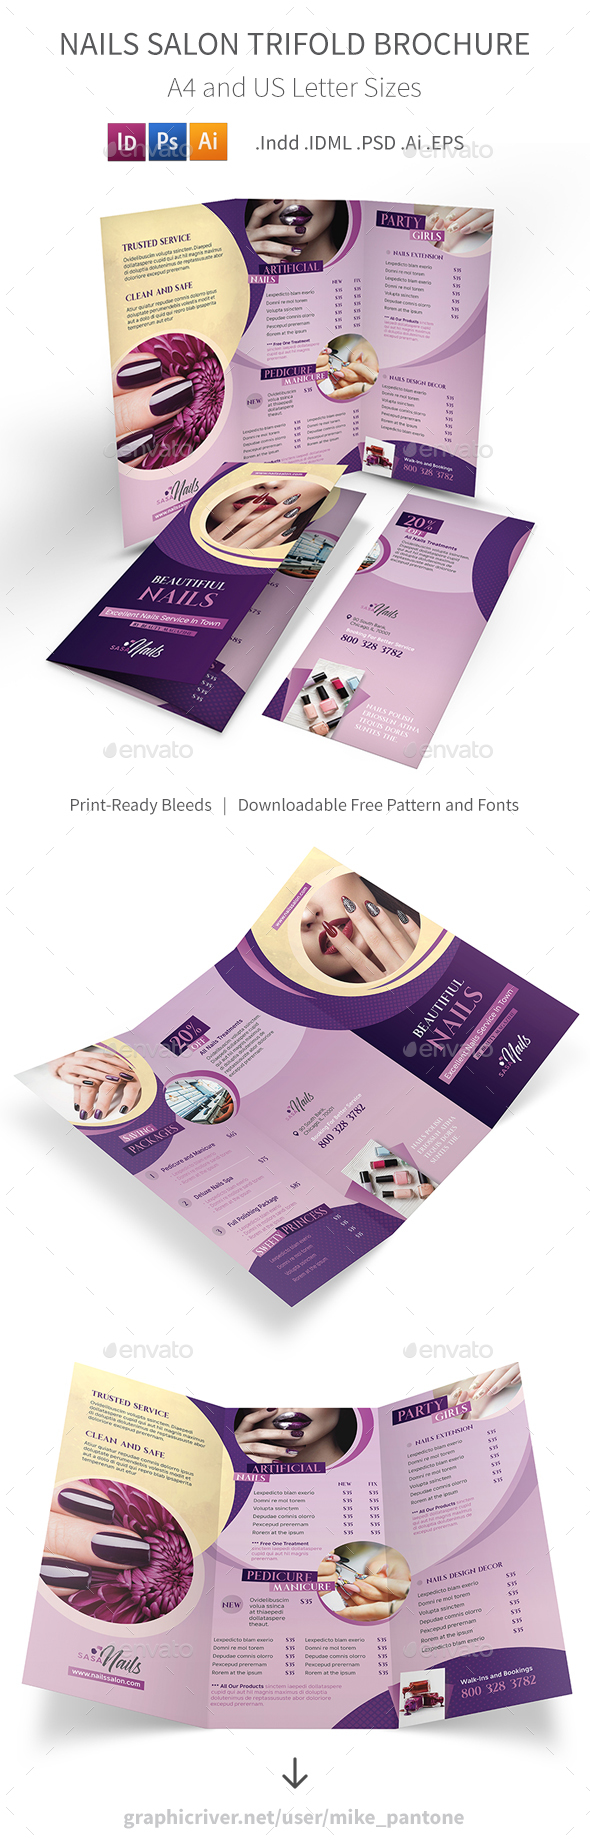 GraphicRiver Nails Salon Trifold Brochure 20870378